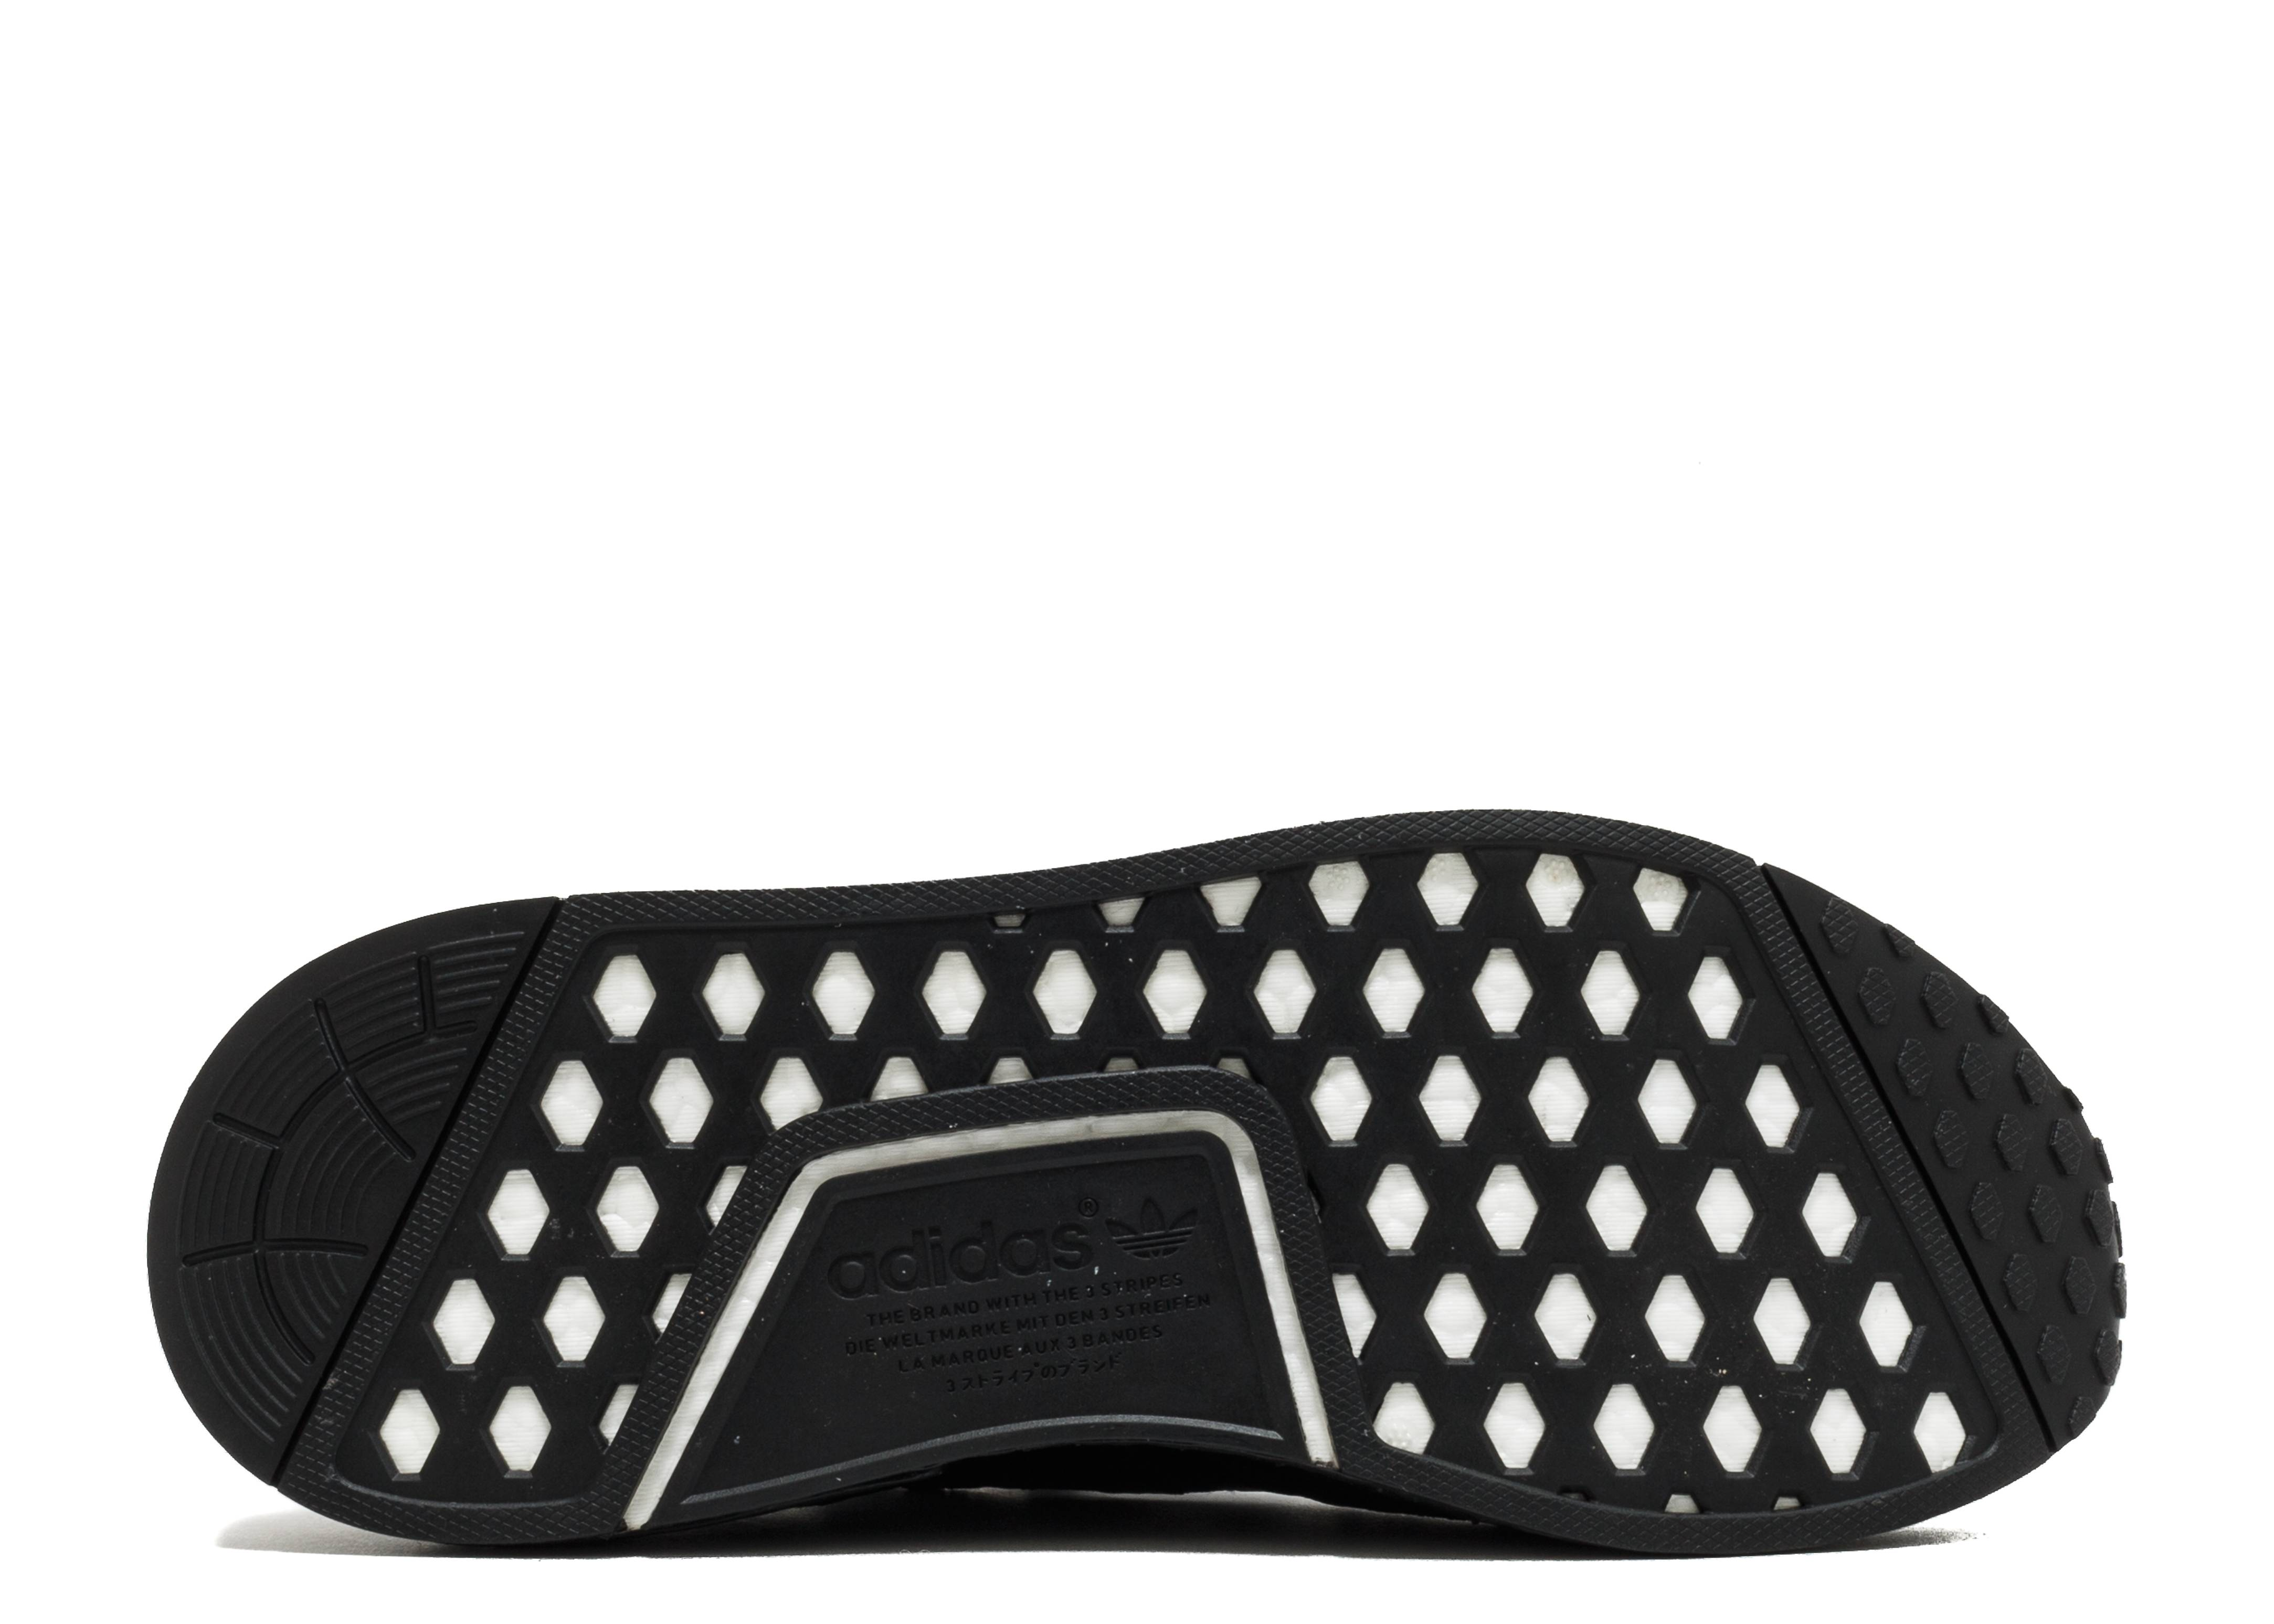 sports shoes dffb4 18210 Nmd R1 Pk